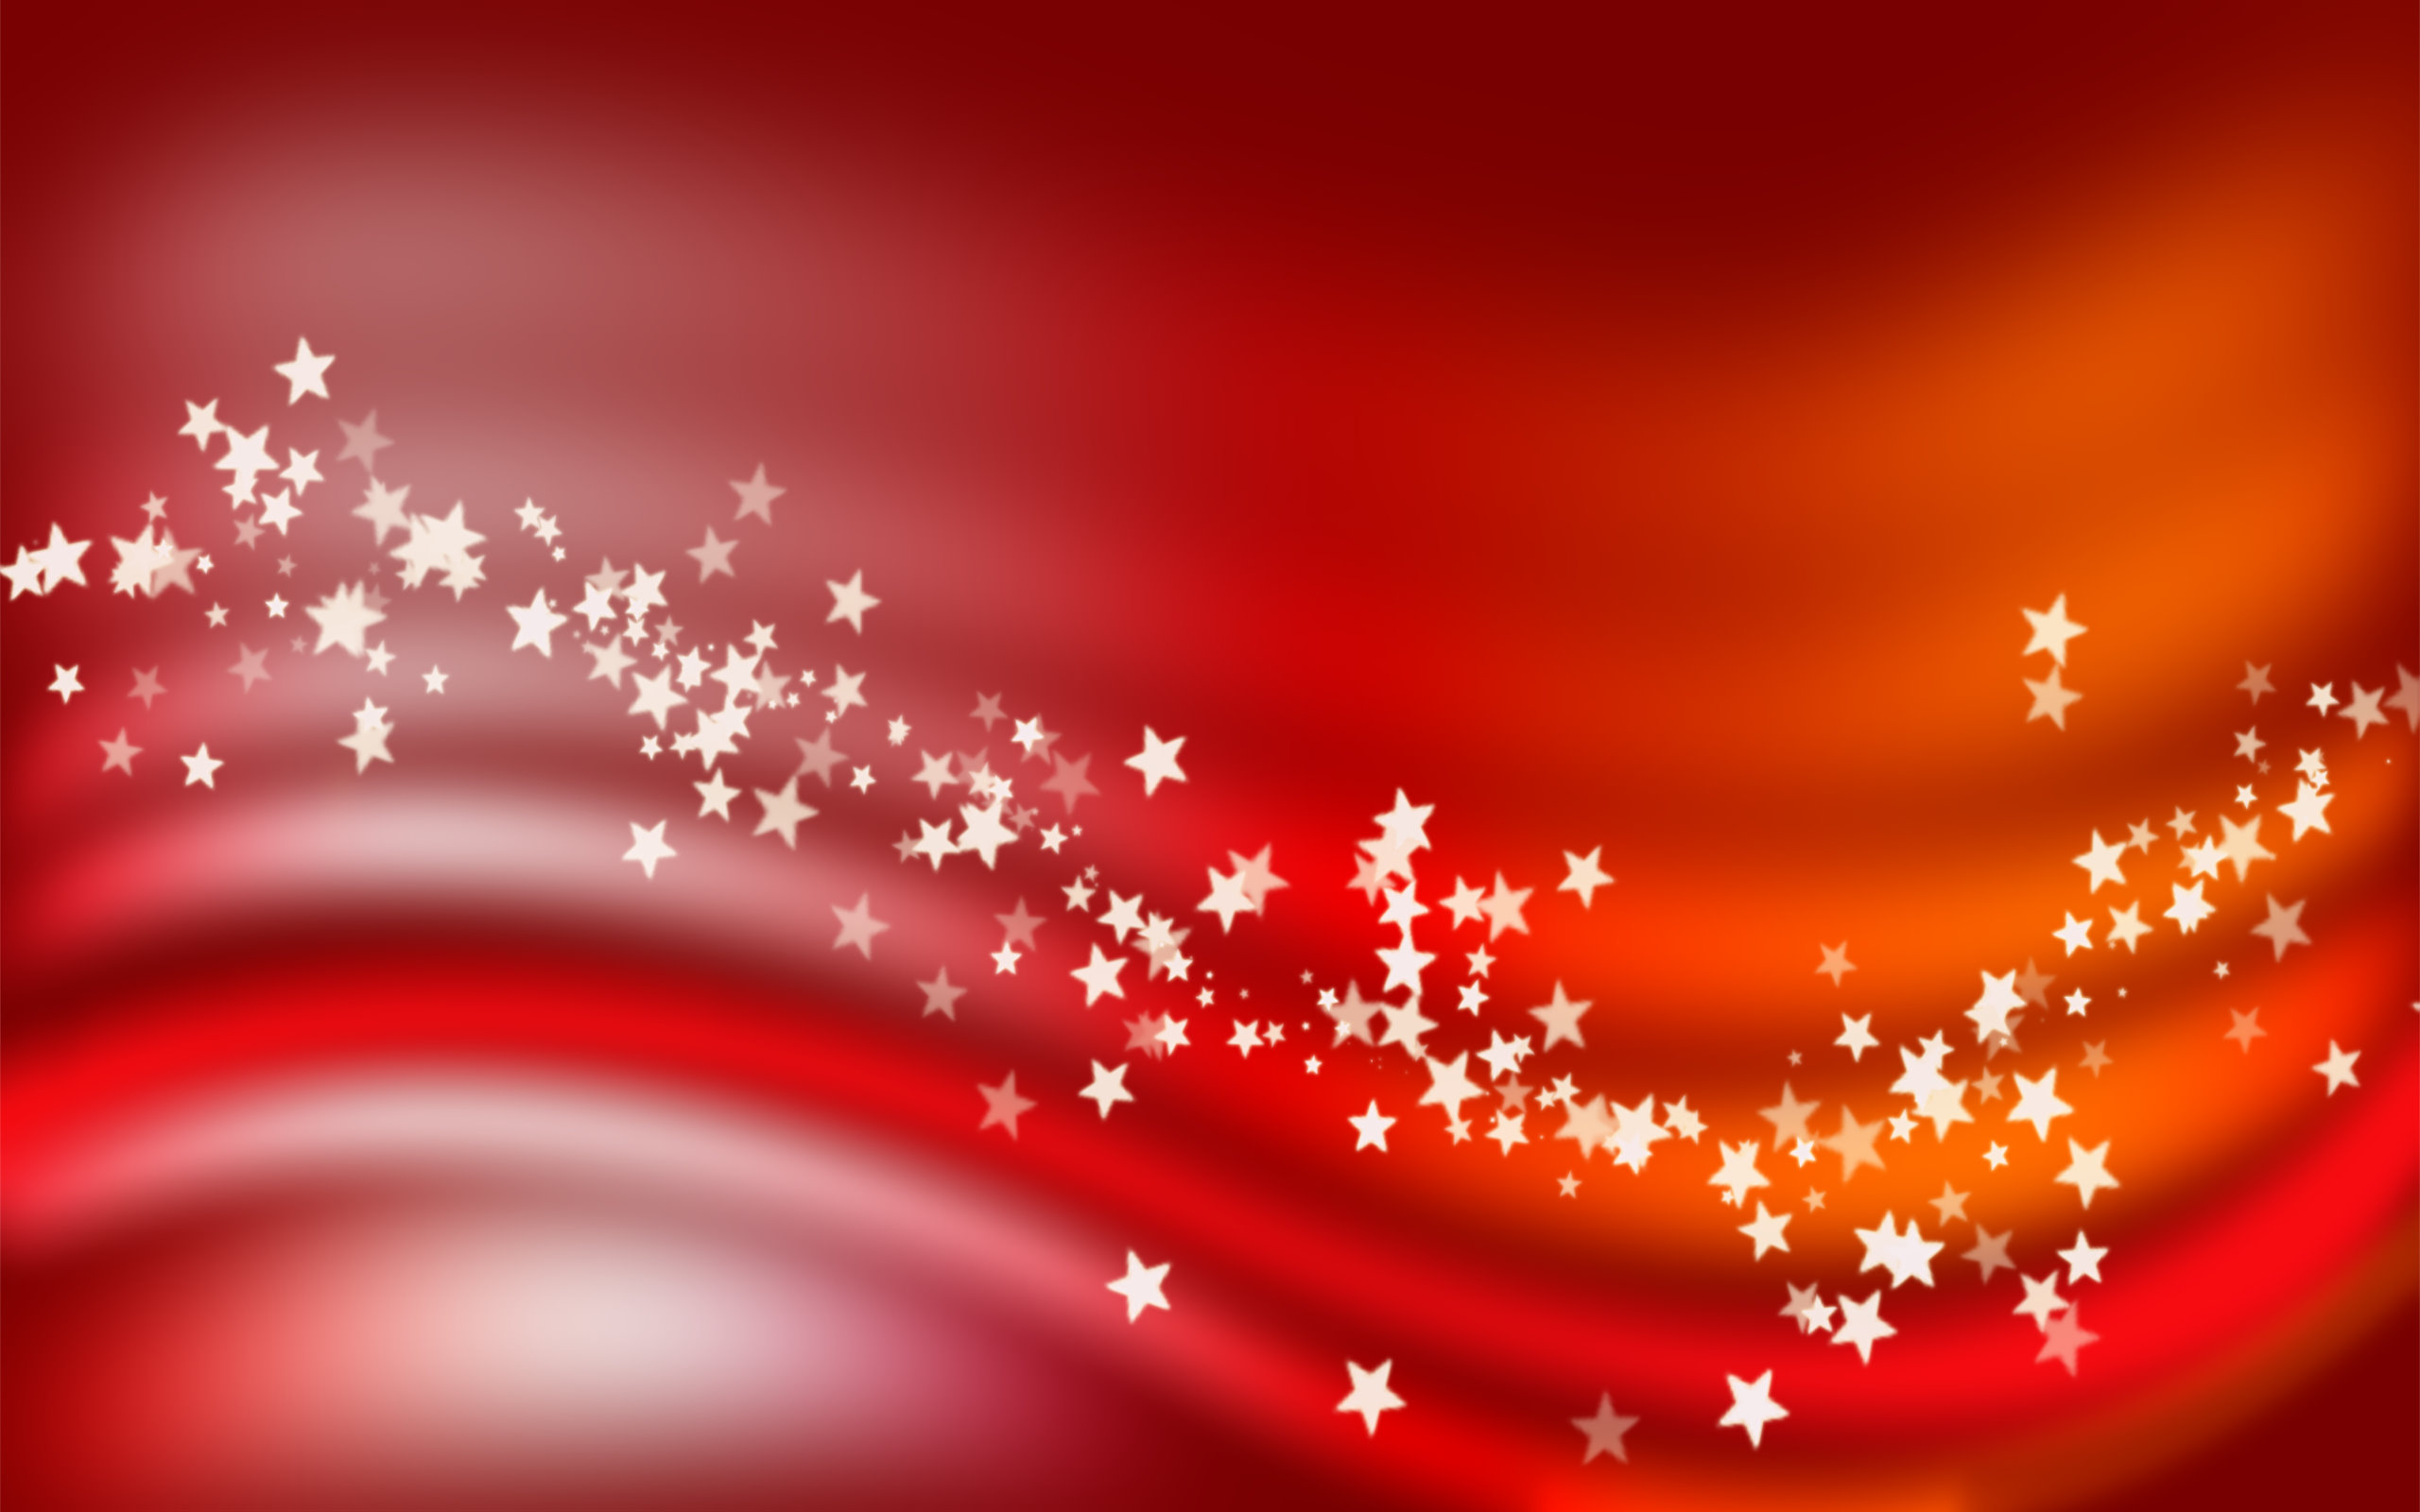 Red Xmas Wallpapers HD Wallpaper | Christmas Wallpapers